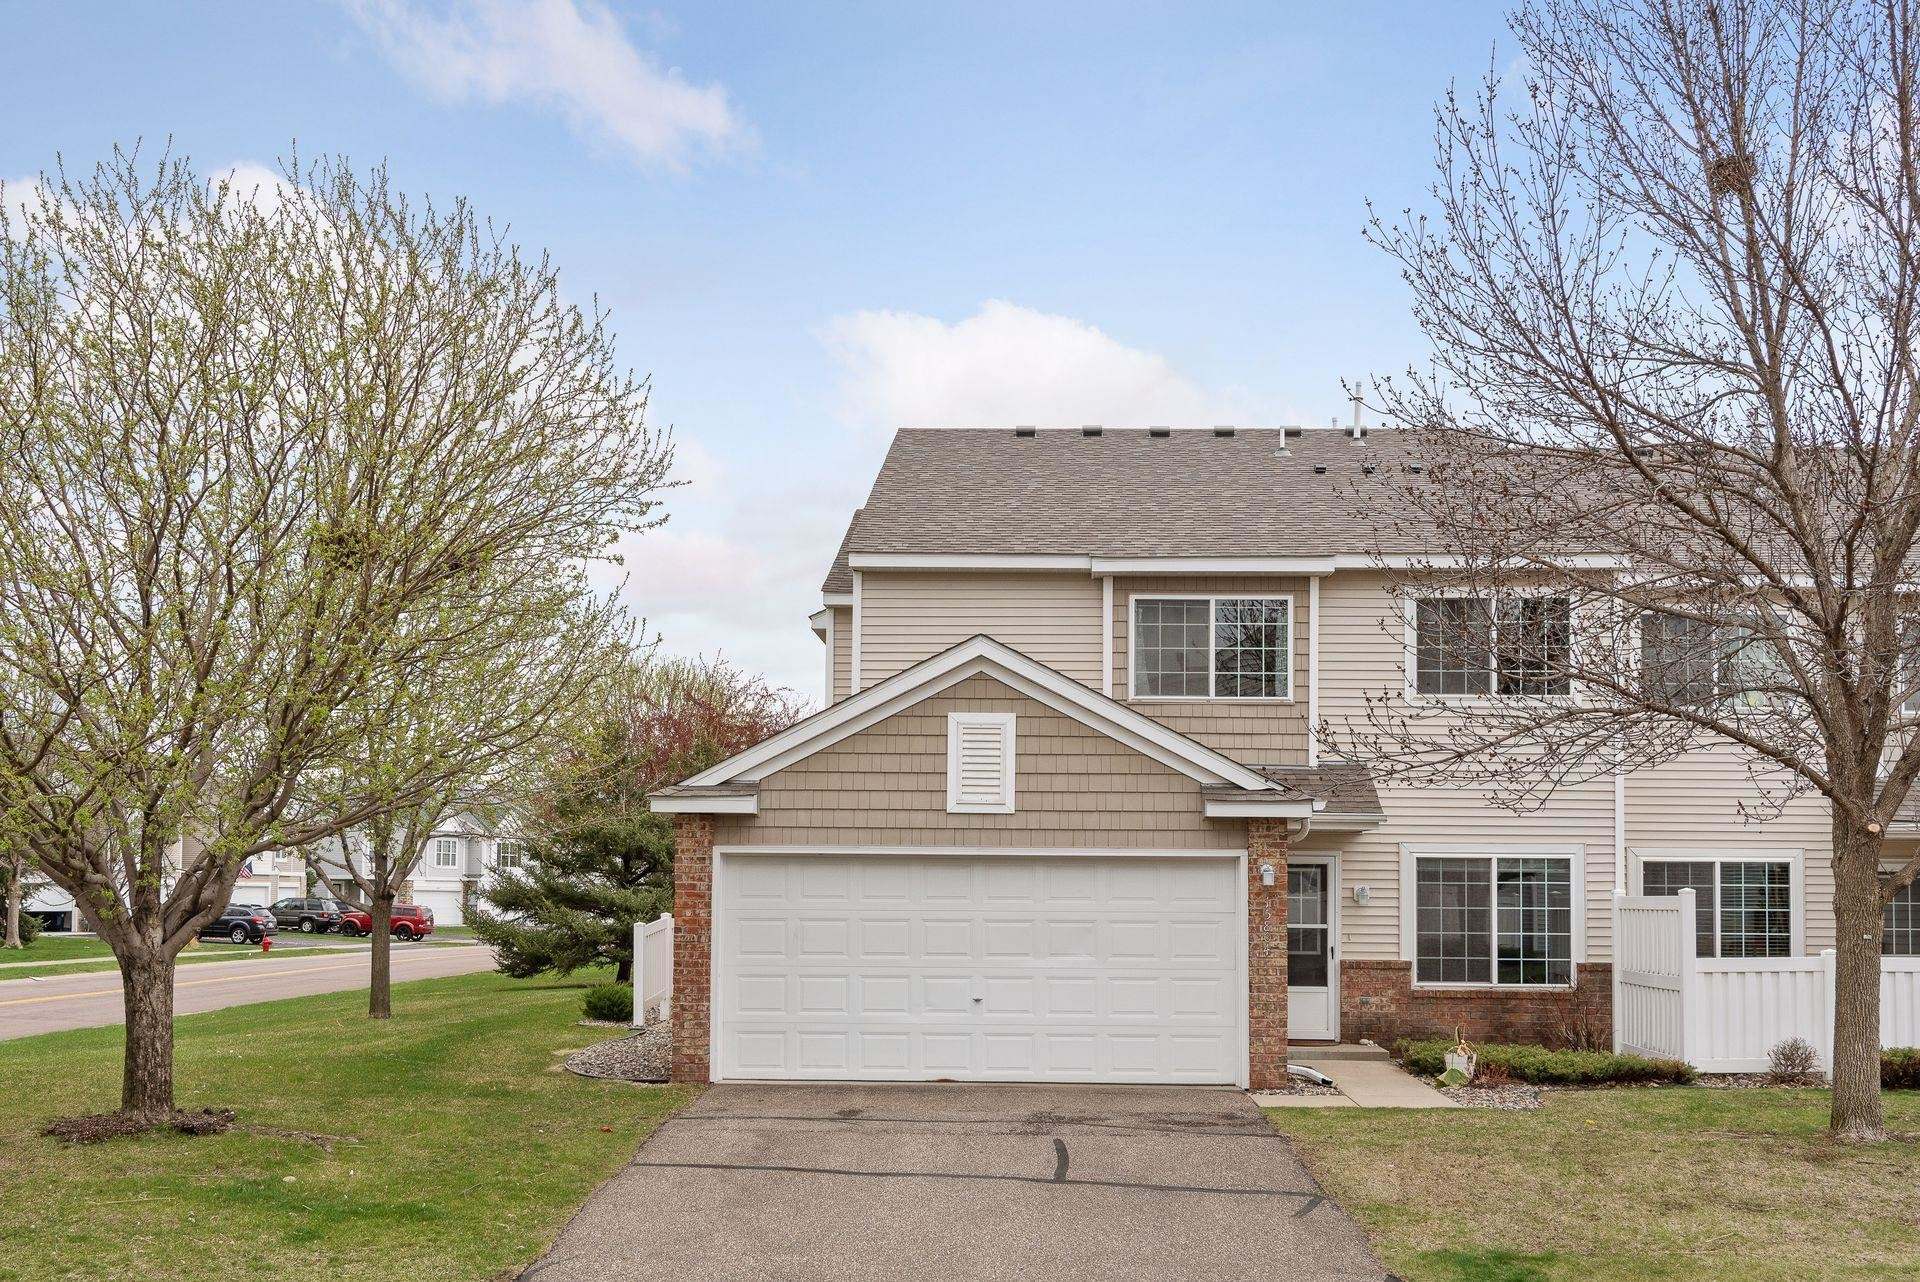 Photo of 15804 Flute Way #250, Apple Valley, MN 55124 (MLS # 5724885)